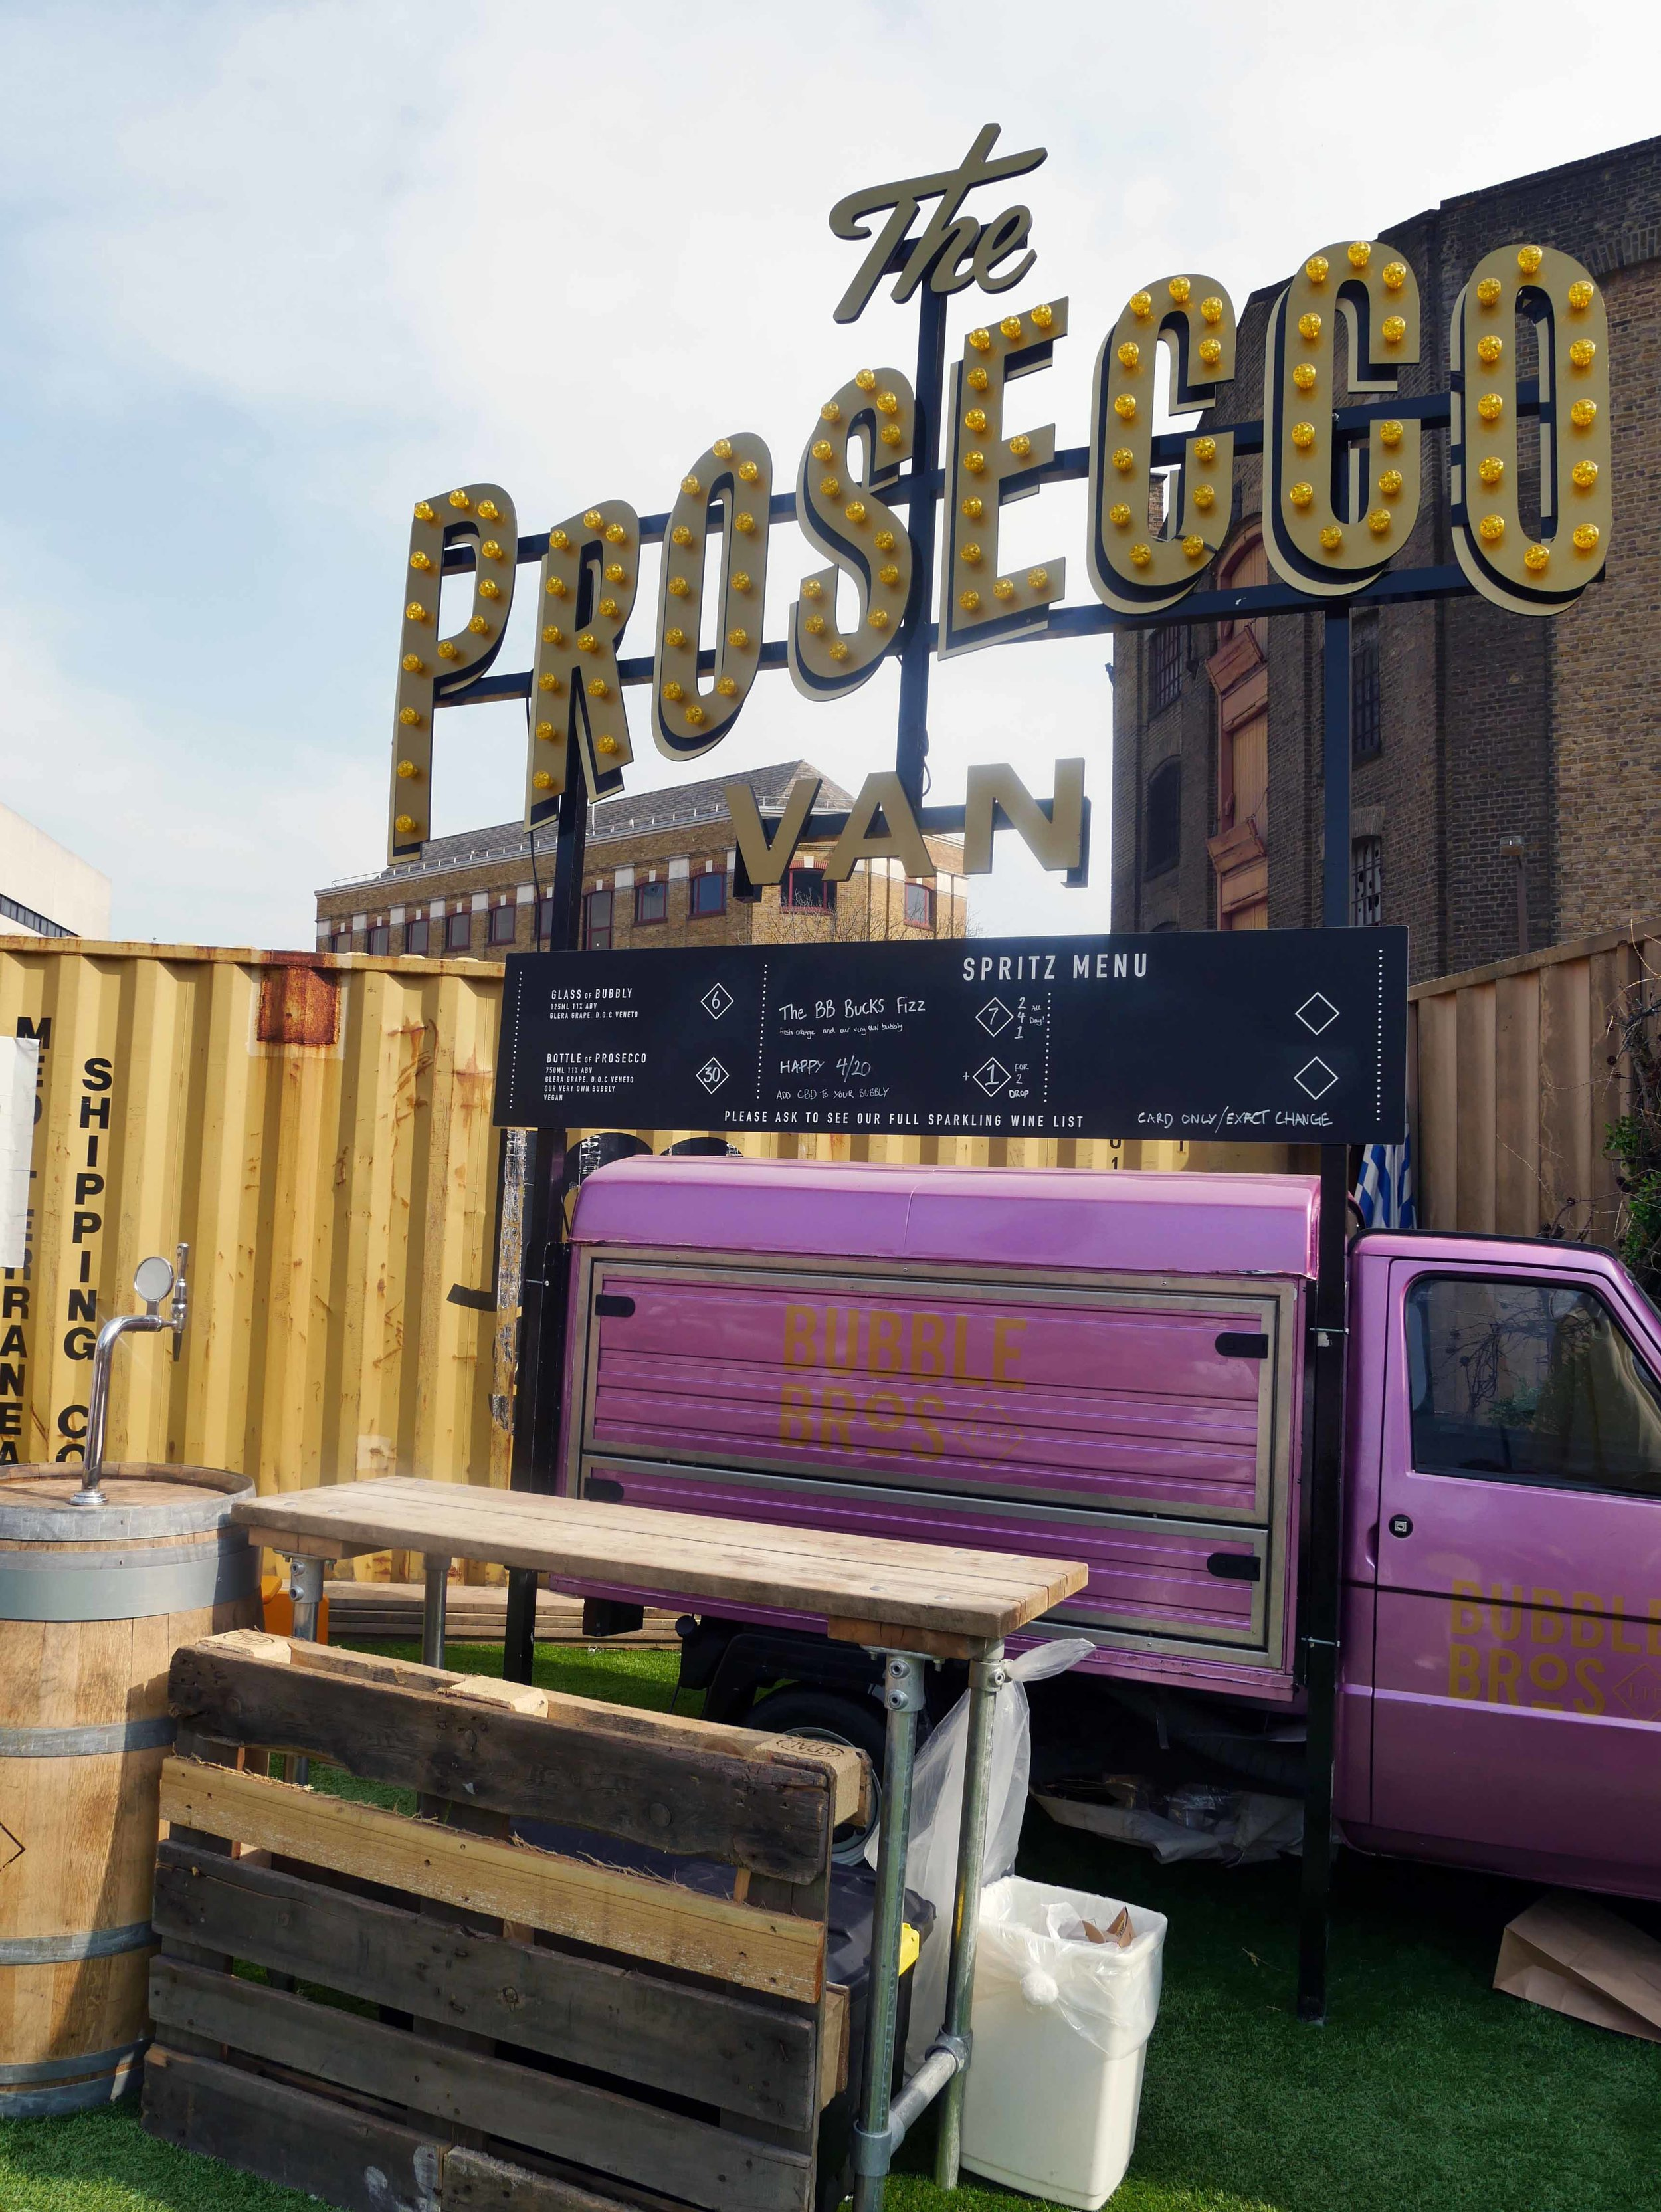 The Prosecco Van at Vinegar Yard, sign me up!